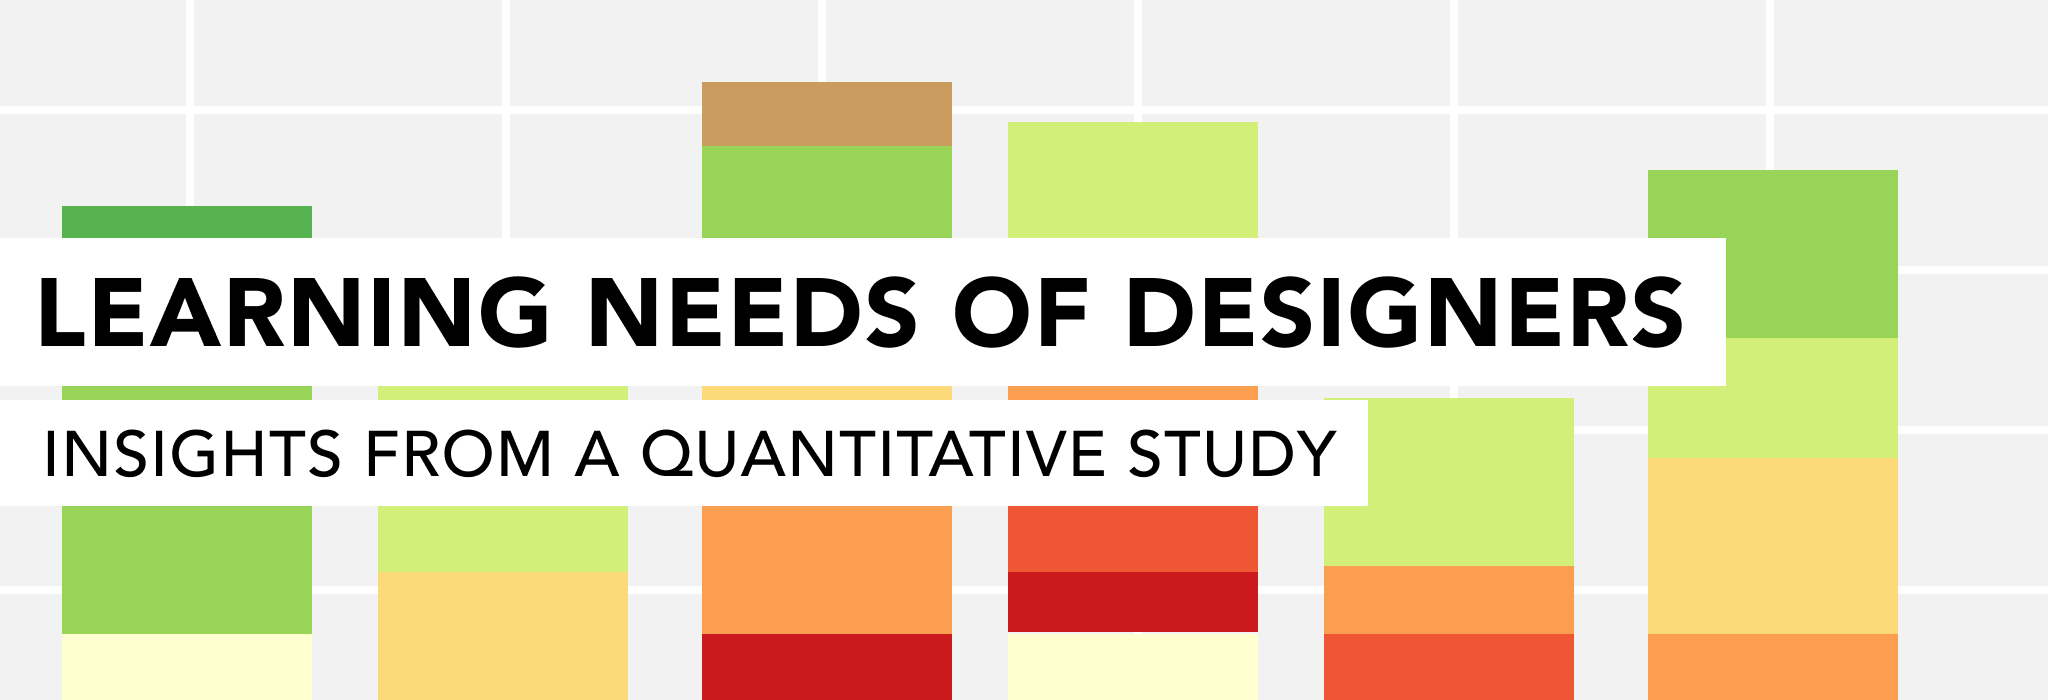 5 Thought-Provoking Insights on the Learning Needs of Designers in Singapore